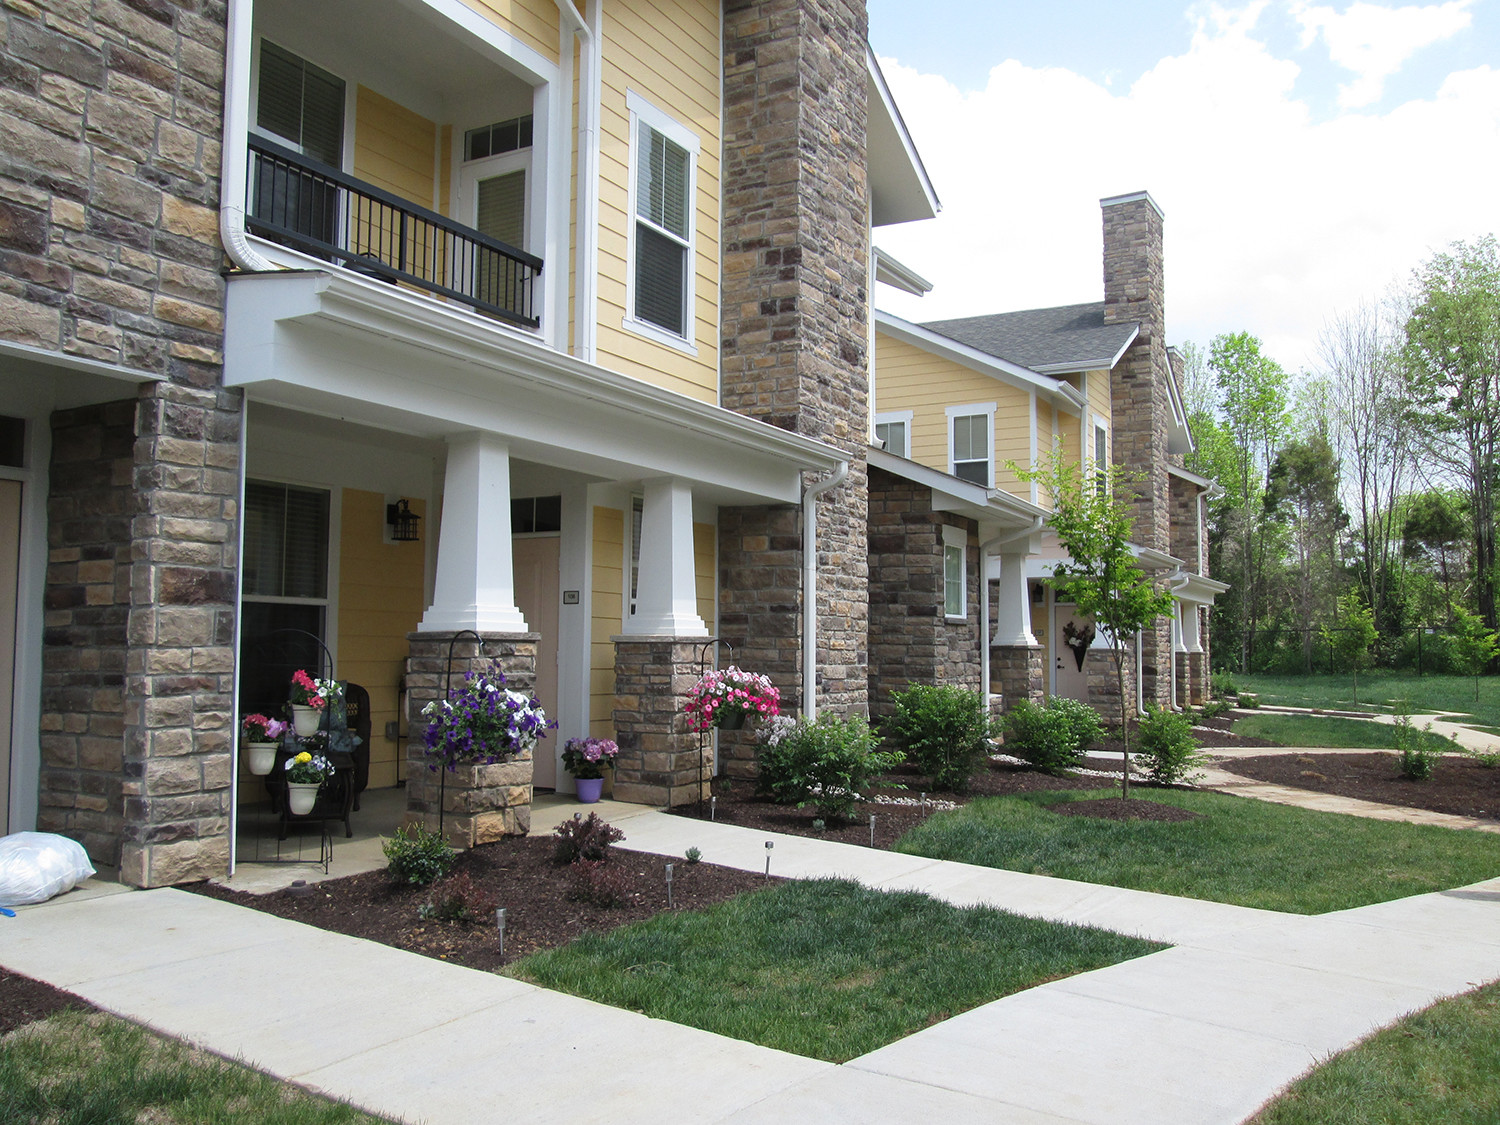 4 Bedroom Apts Near Me - Houses For Rent Info